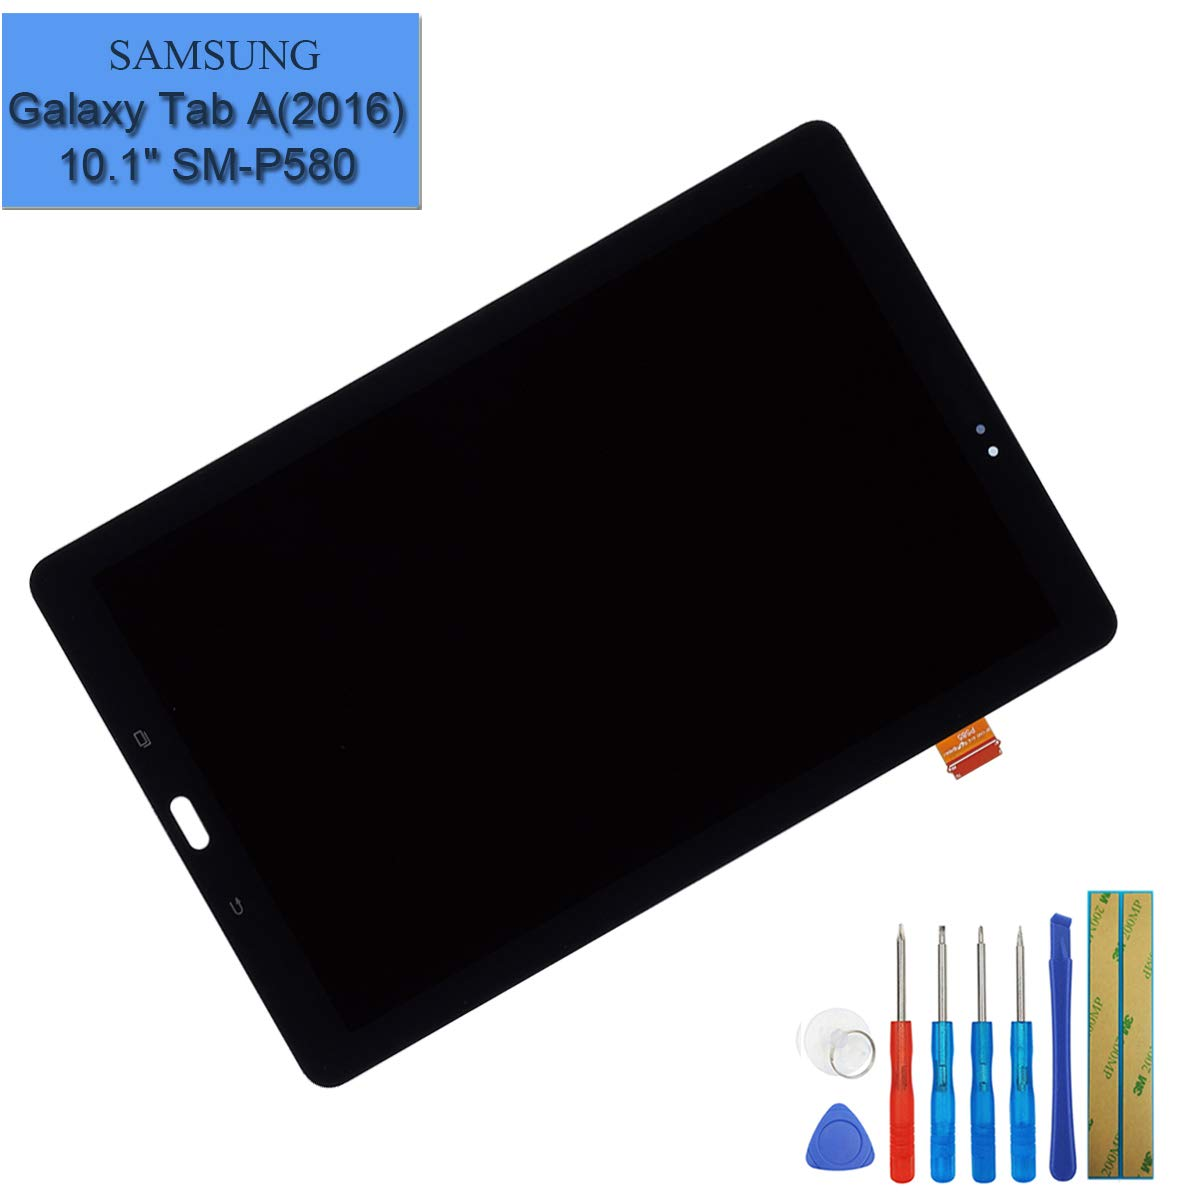 LCD Display Assembly Digitizer Compatible with Samsung Galaxy Tab A 10.1-Inch 2016 SM-P580 P580N / SM-P585 P585M P585Y P585N Display Full Complete Replacement Parts + Tools